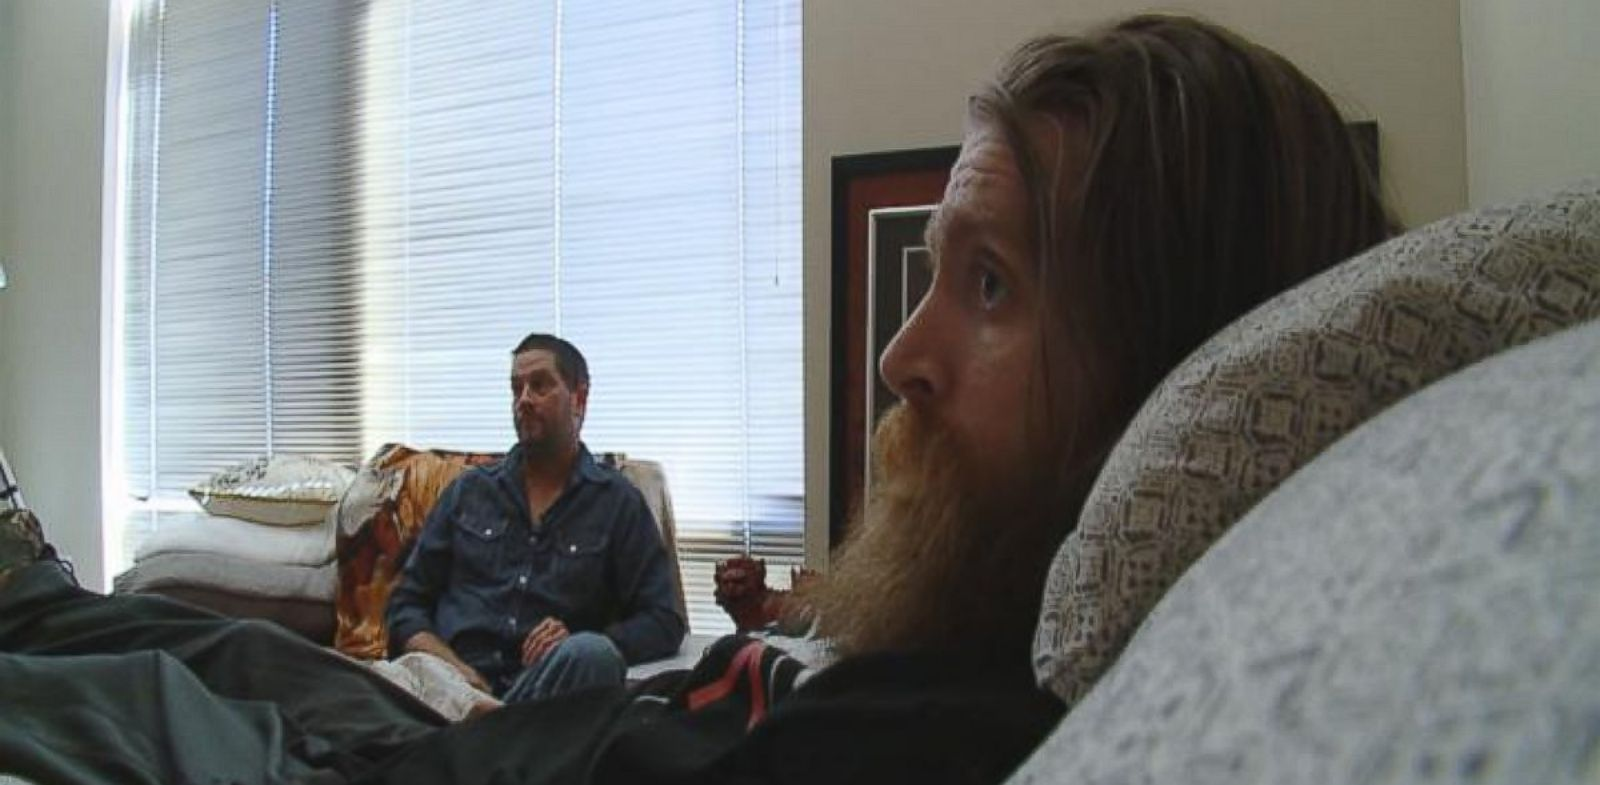 PHOTO: Tomas Young, in the foreground, was paralyzed from the chest down by a snipers bullet in 2004 in Iraq.